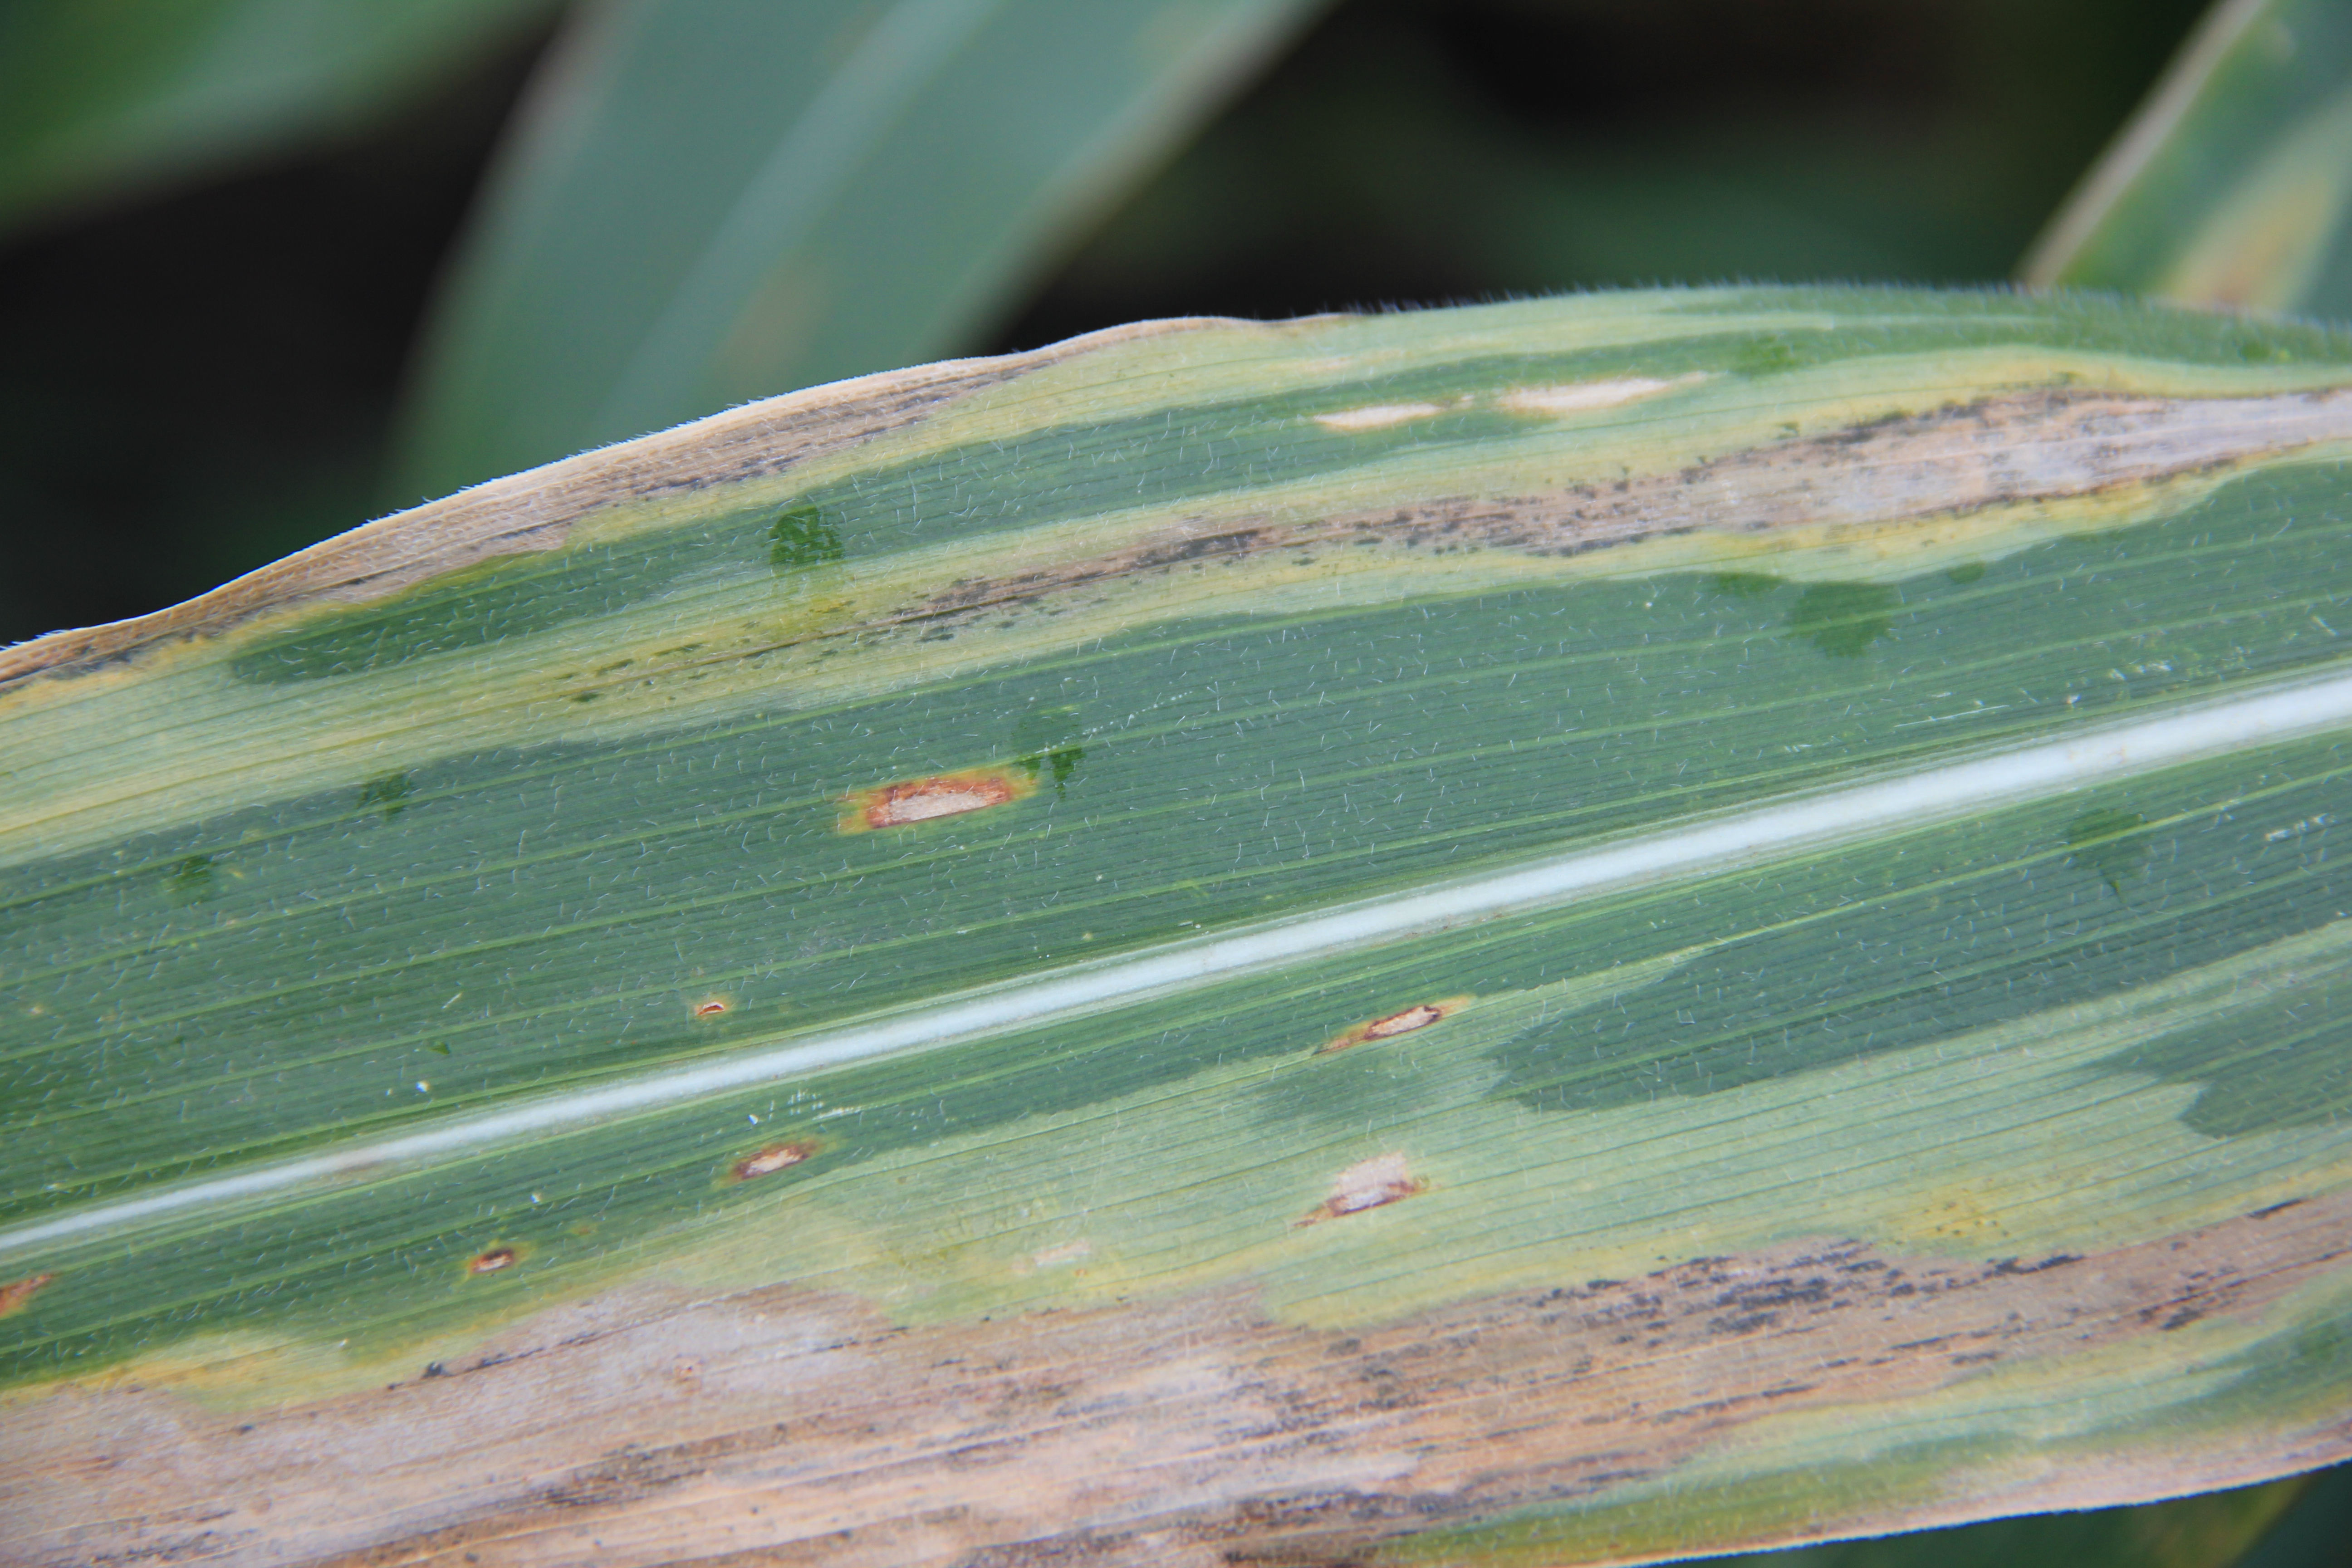 Lesions are long, gray-green to black, water-soaked, and have wavy edges.